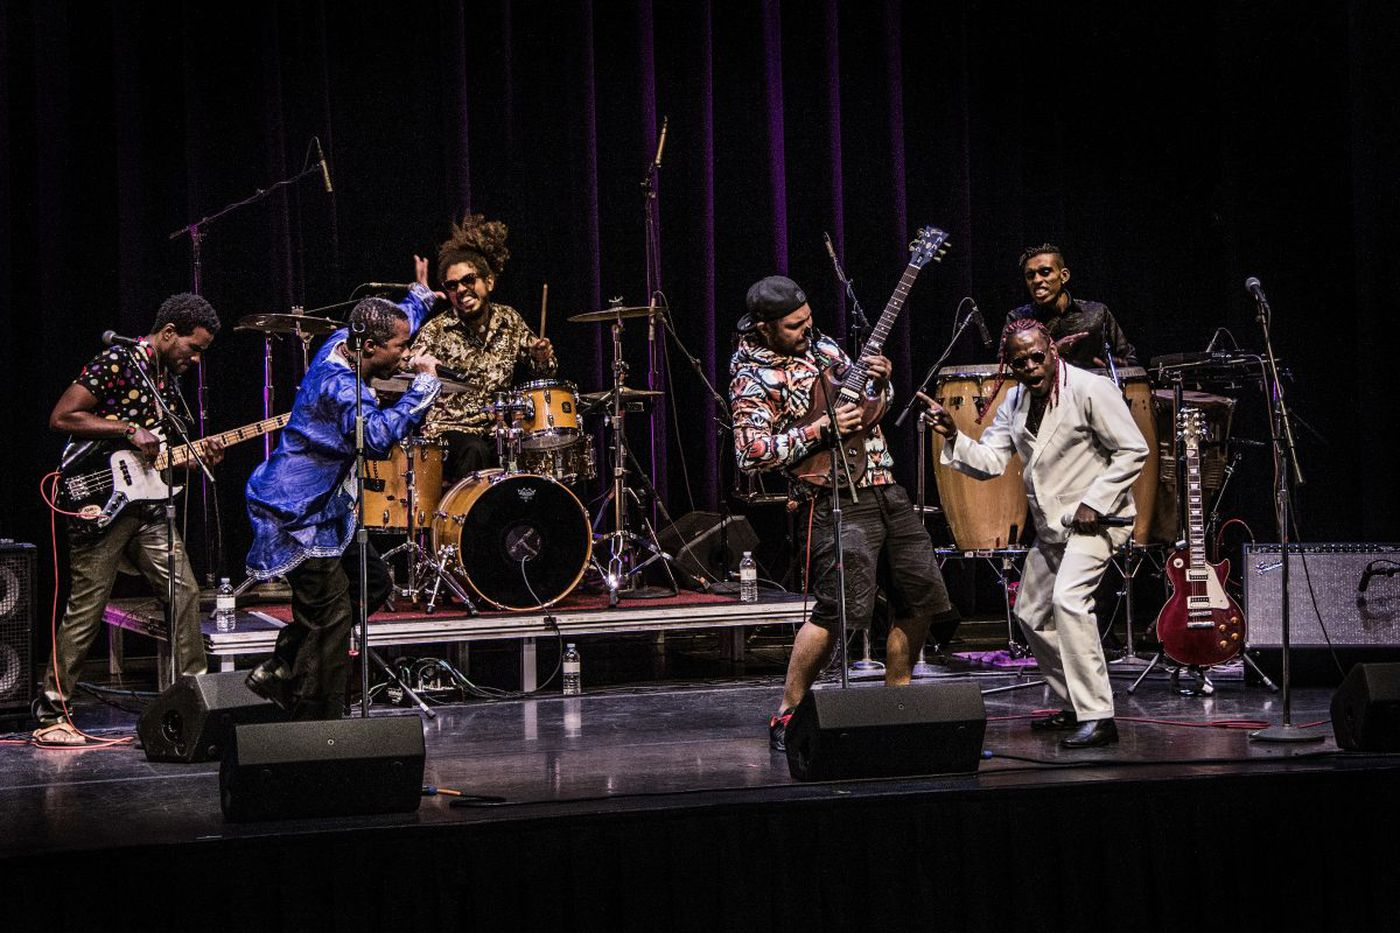 Philly's AfroTaino Productions' fifth annual Nuevofest of alternative Latin artists is even more…. Nuevo